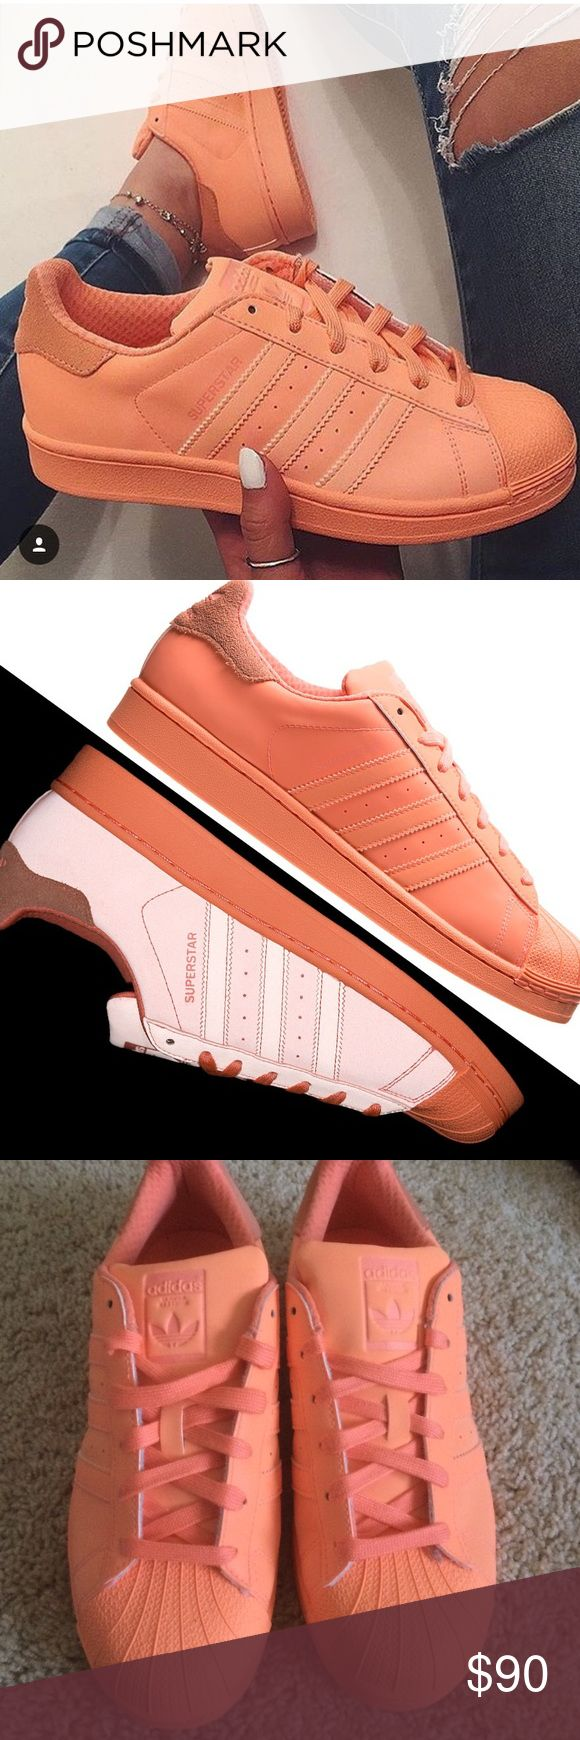 Adidas Superstar Adicolor in Sun Glow Peach MENS SIZE 61/2 WOMENS 8, Super good condition barely worn sun glow peach shell top adidas superstars! Adidas Shoes Athletic Shoes